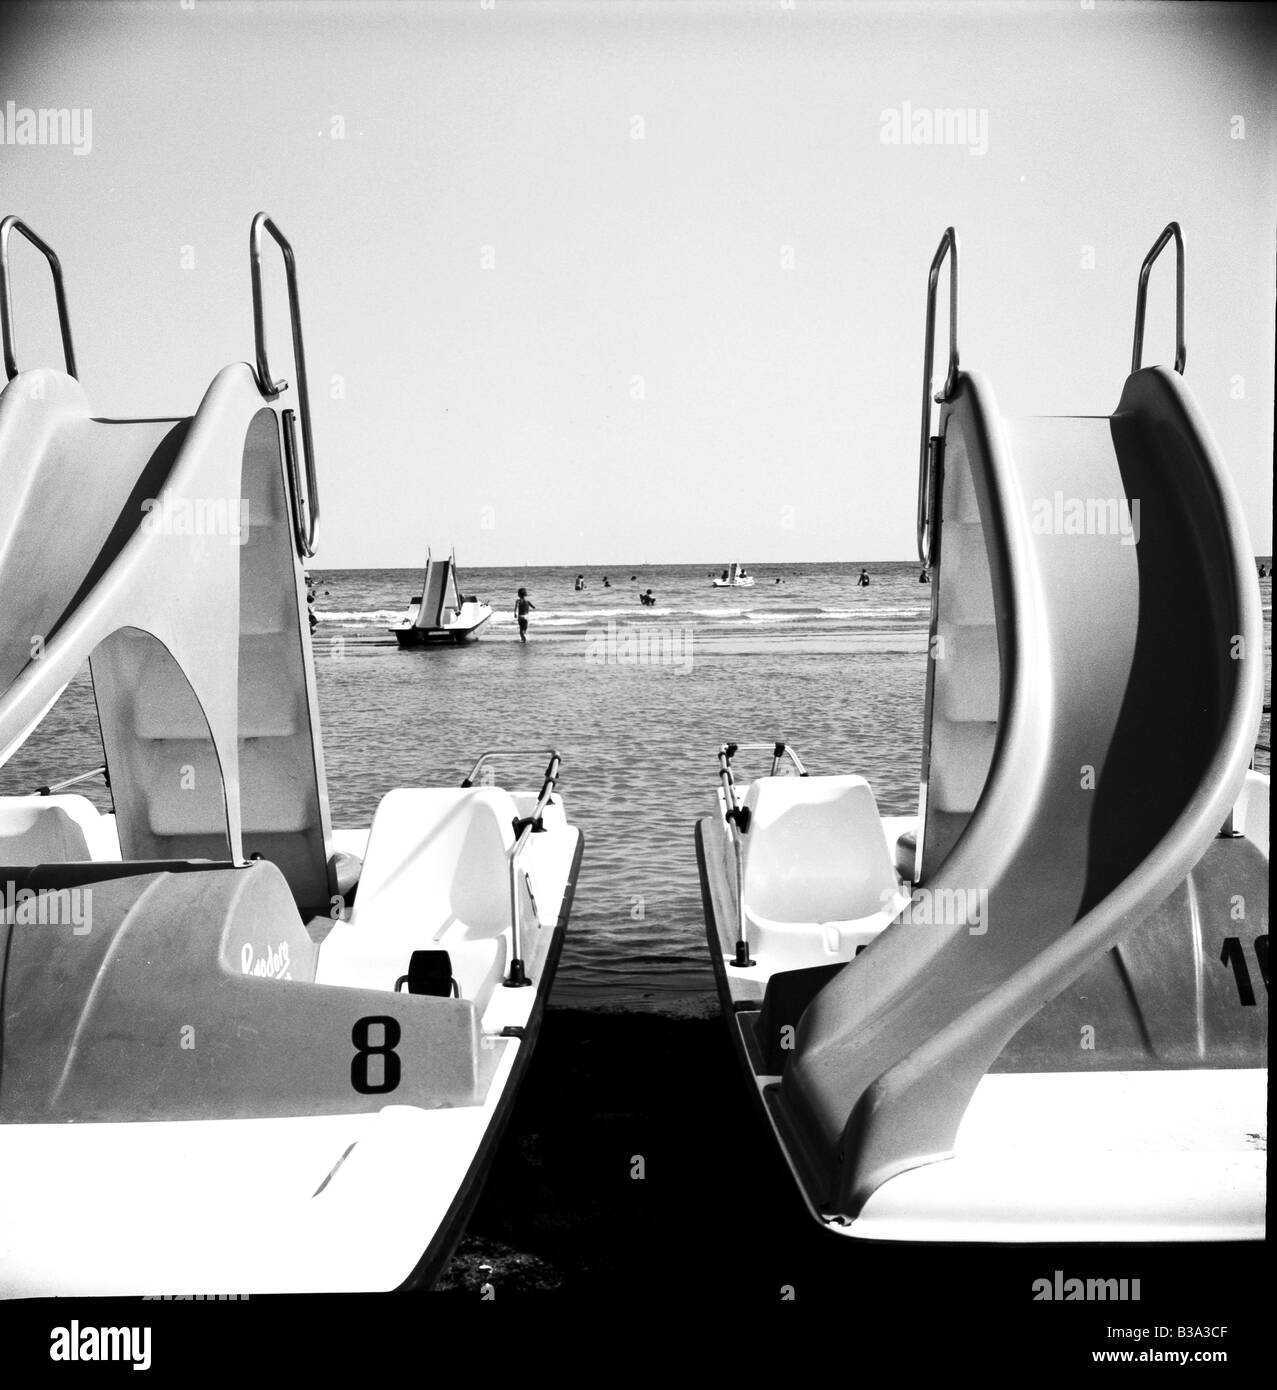 paddleboats in Caole, Italy - Stock Image